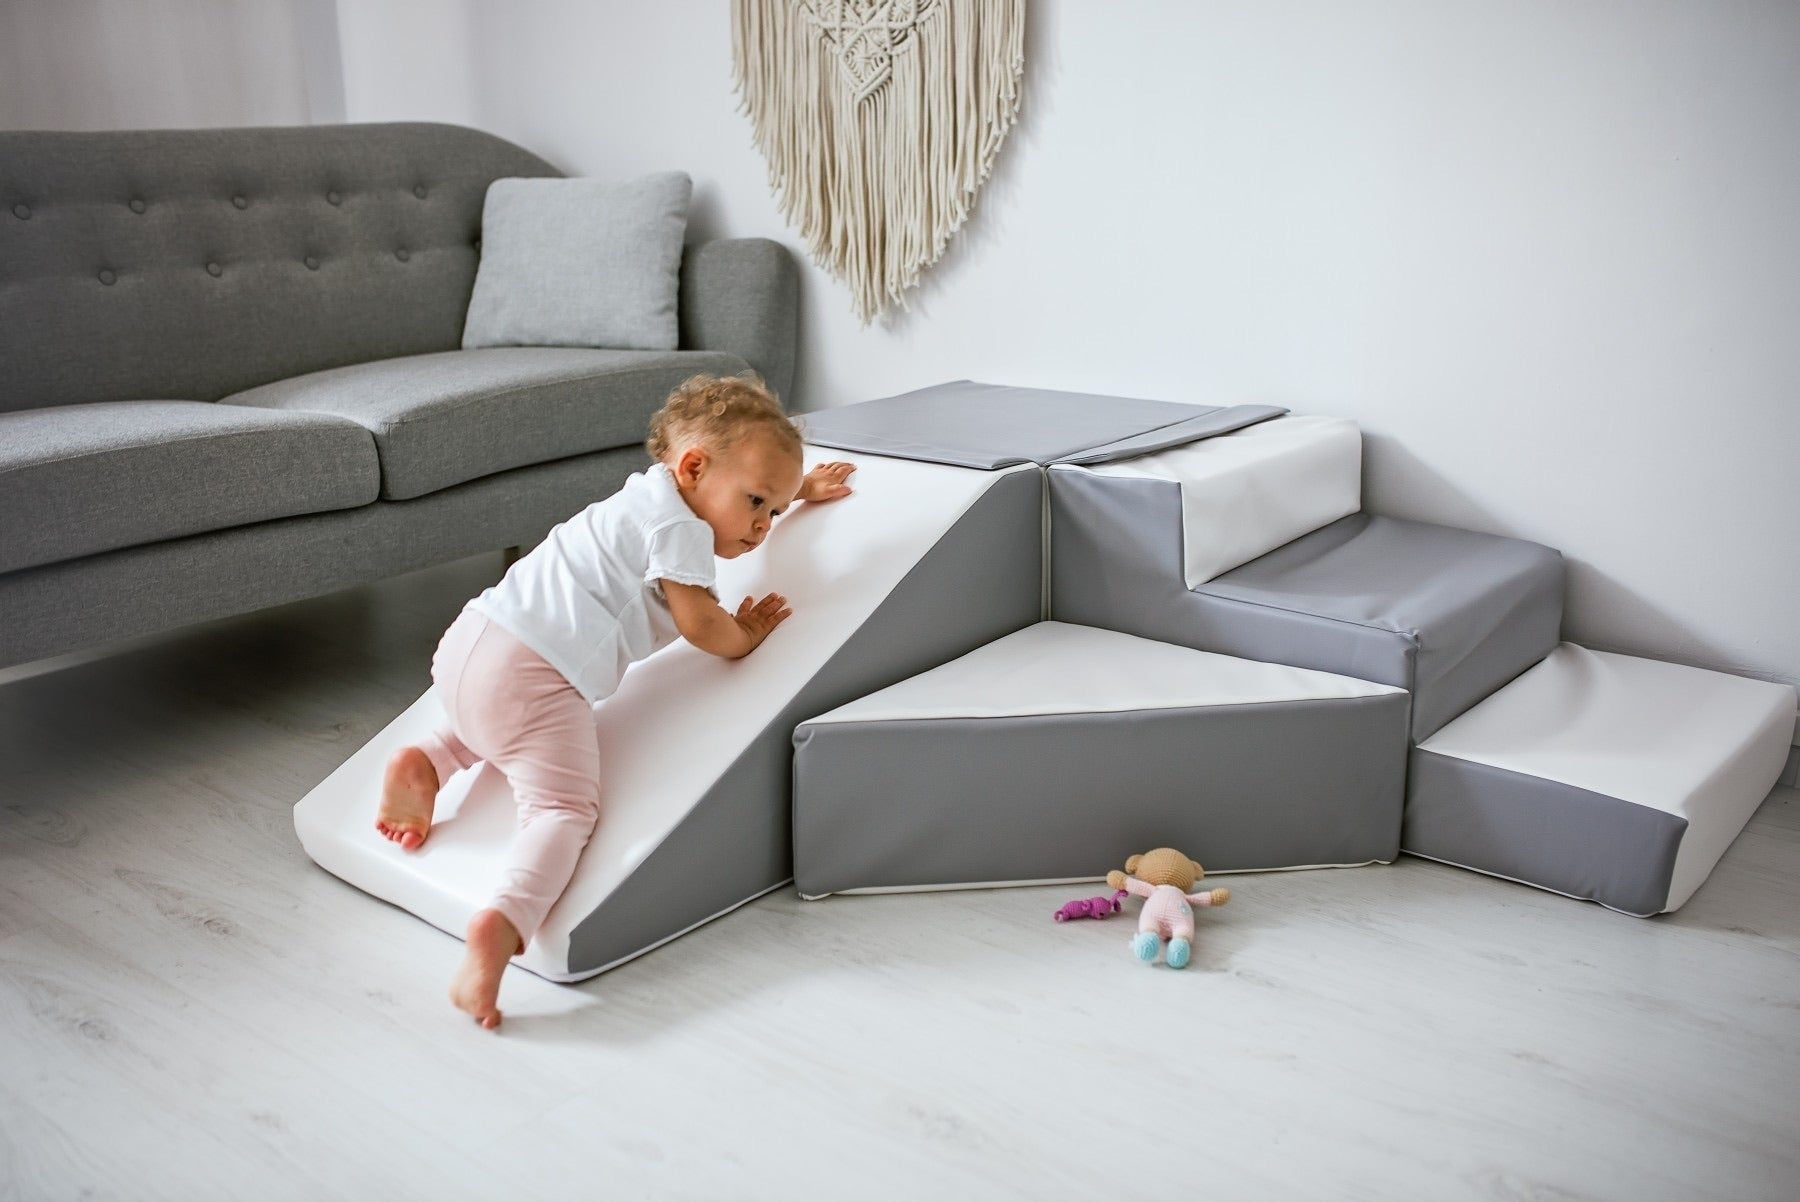 Soft Play Step & Slide Set - - MADE IN EUROPE